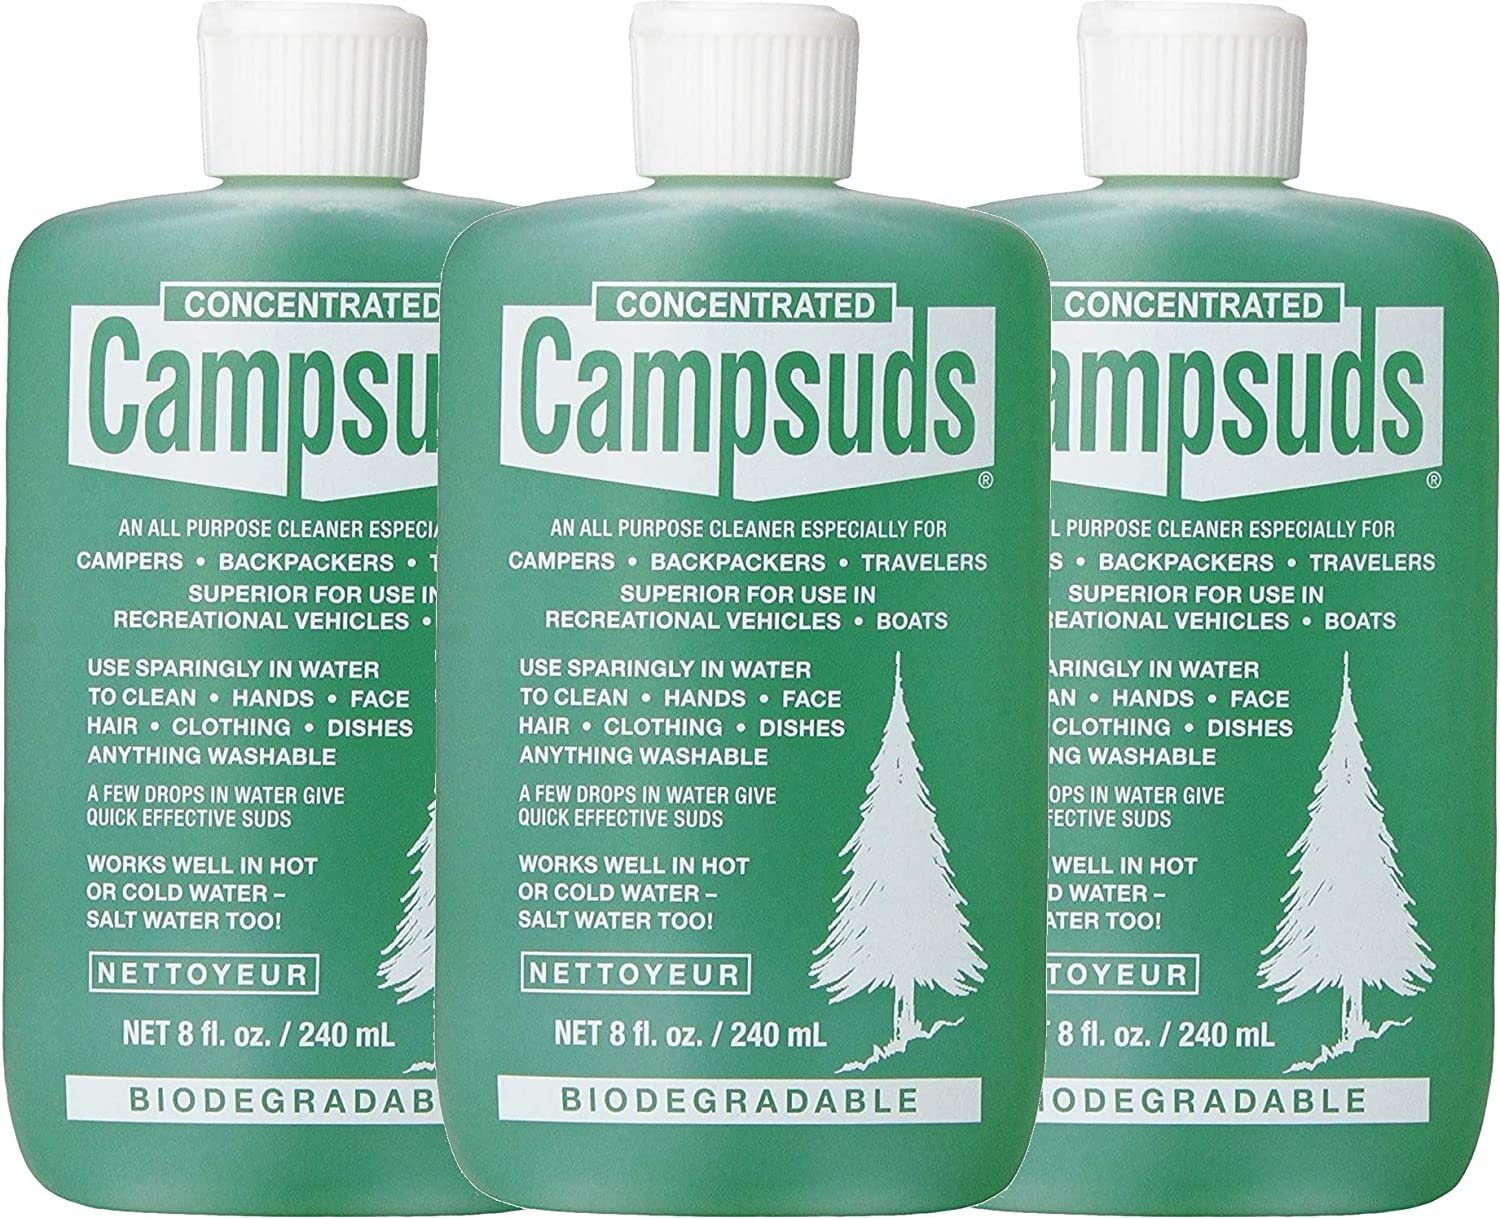 Sierra Dawn Campsuds Outdoor Soap Biodegradable Environmentally Safe All Purpose Cleaner, Camping Hiking Backpacking Travel Camp, Multipurpose